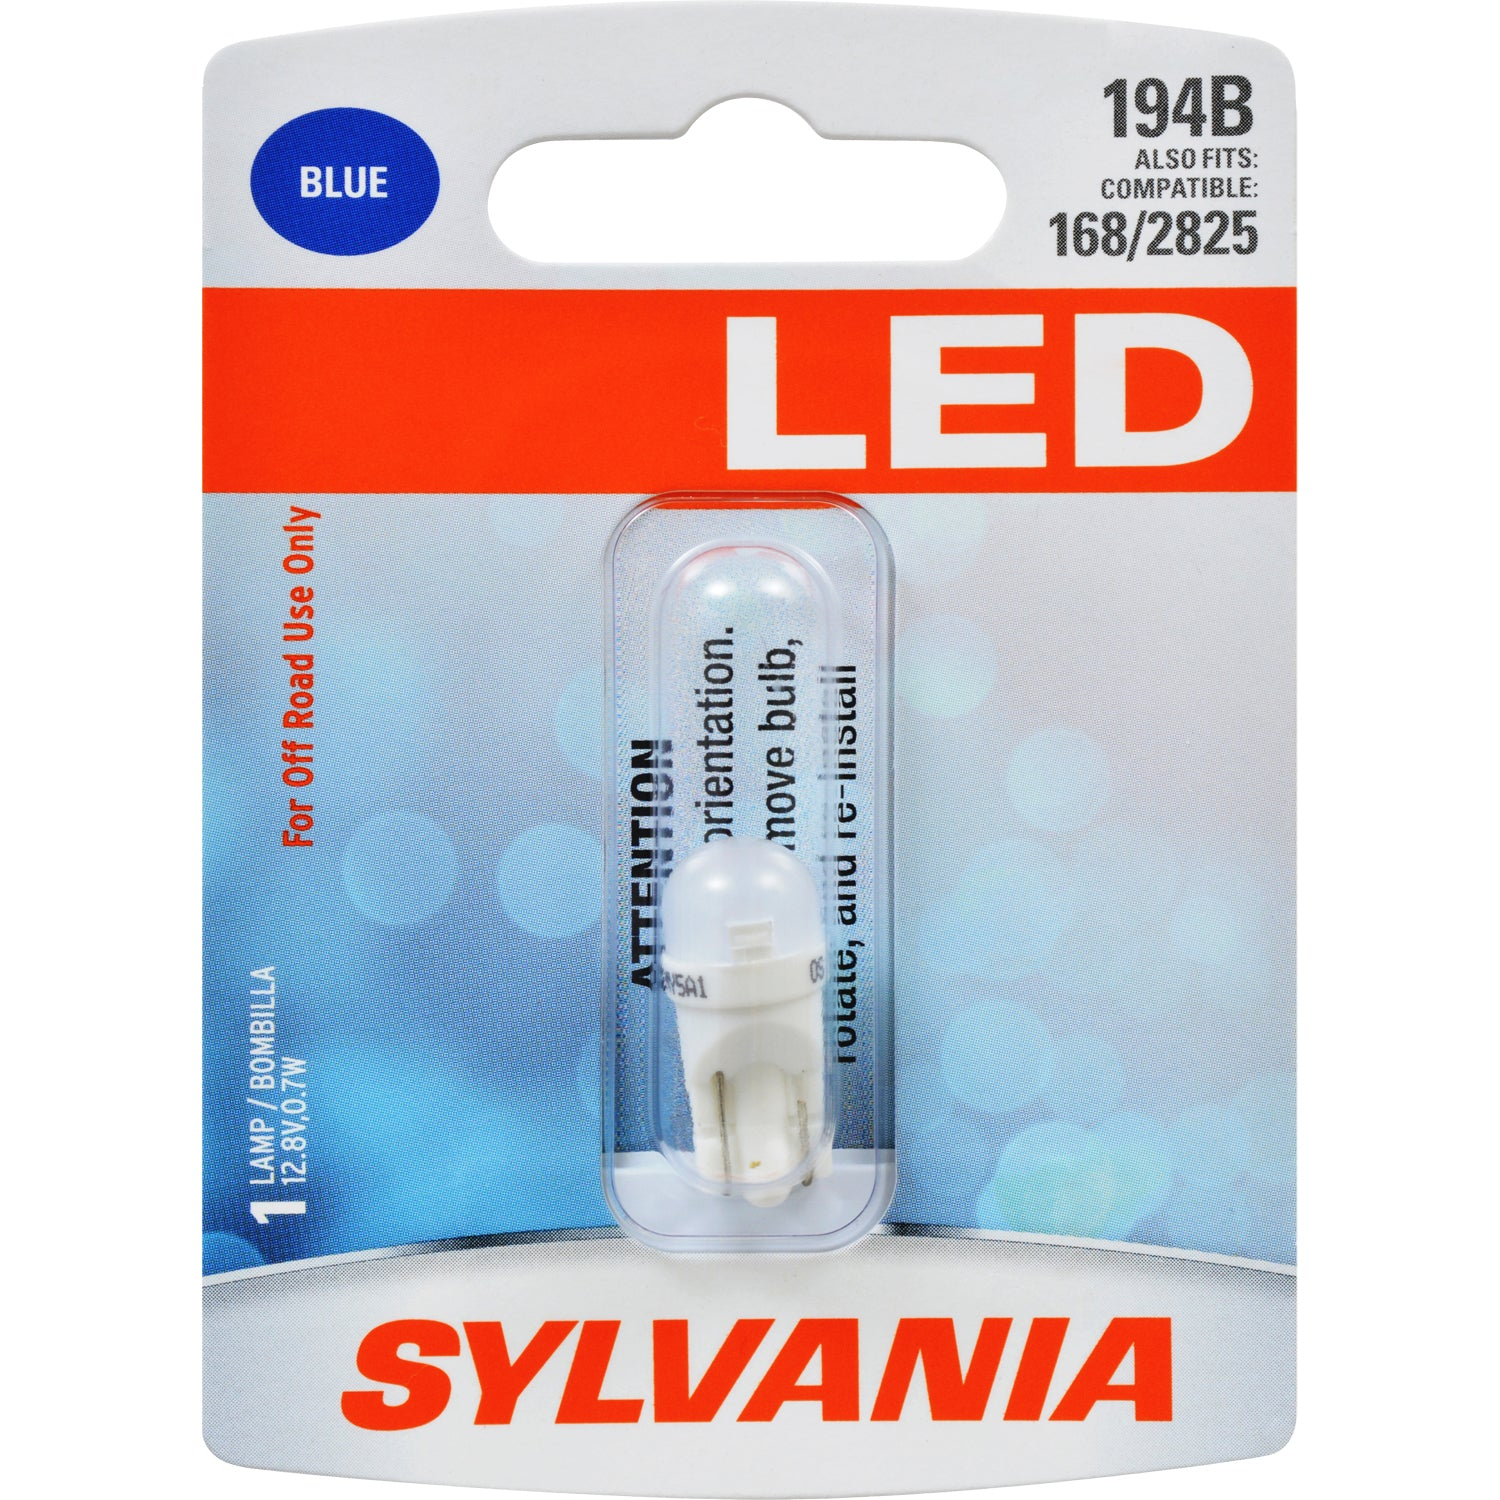 SYLVANIA 194 T10 W5W Blue LED Automotive Bulb